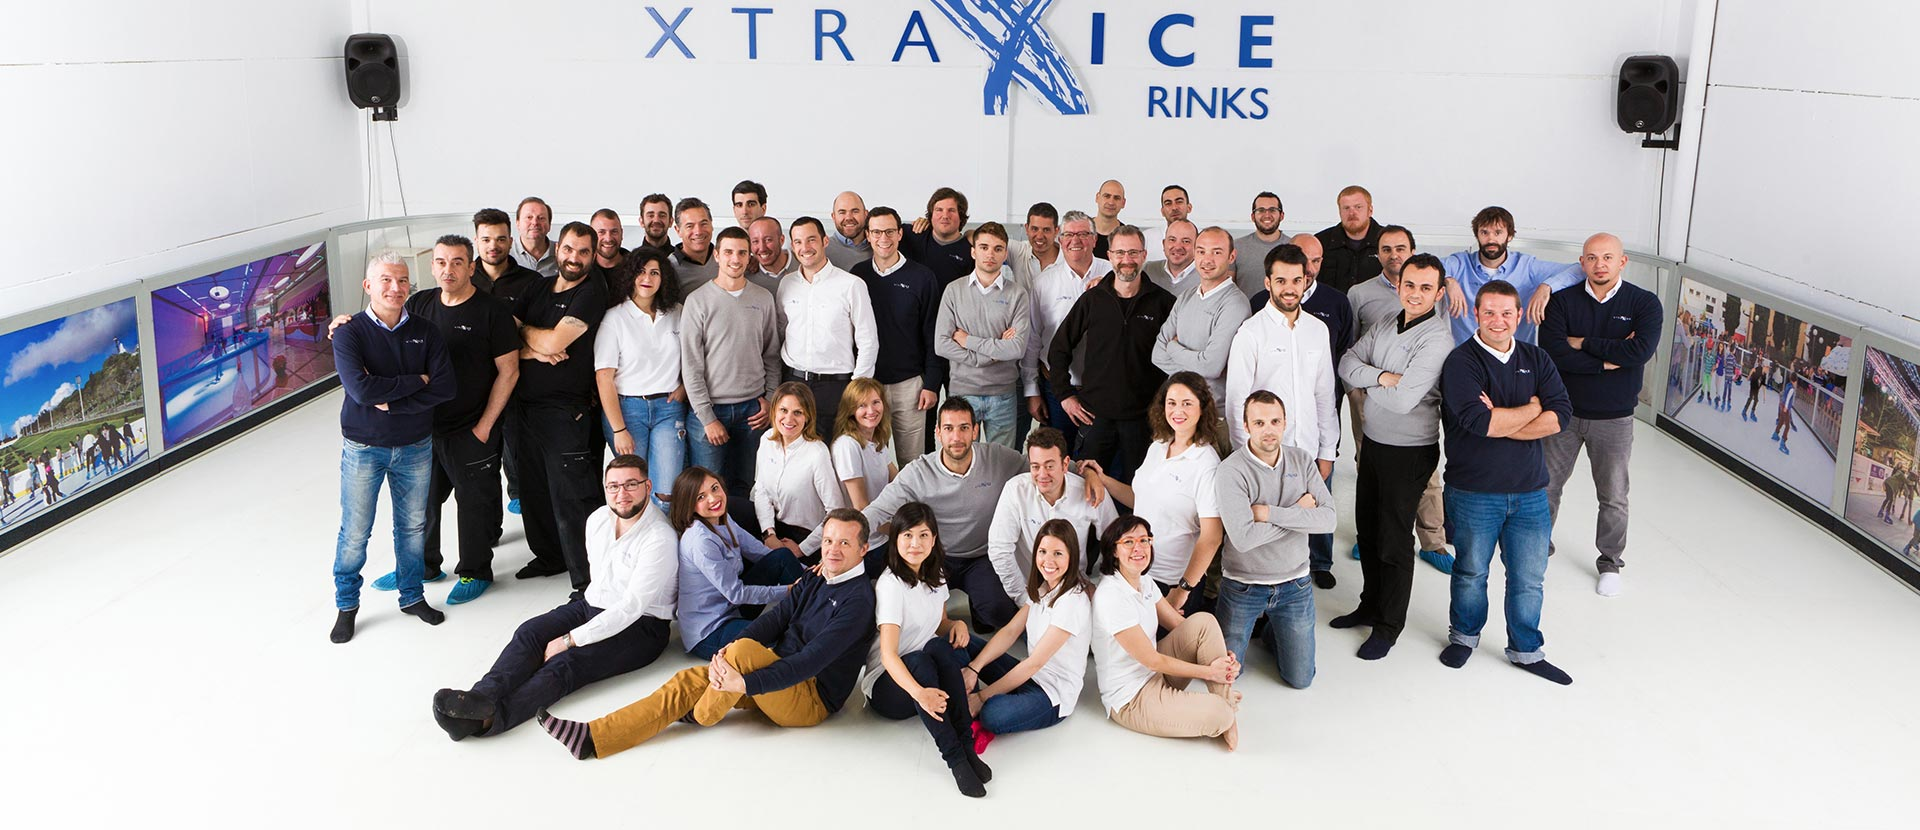 Ice rink buider, Xtraice team members